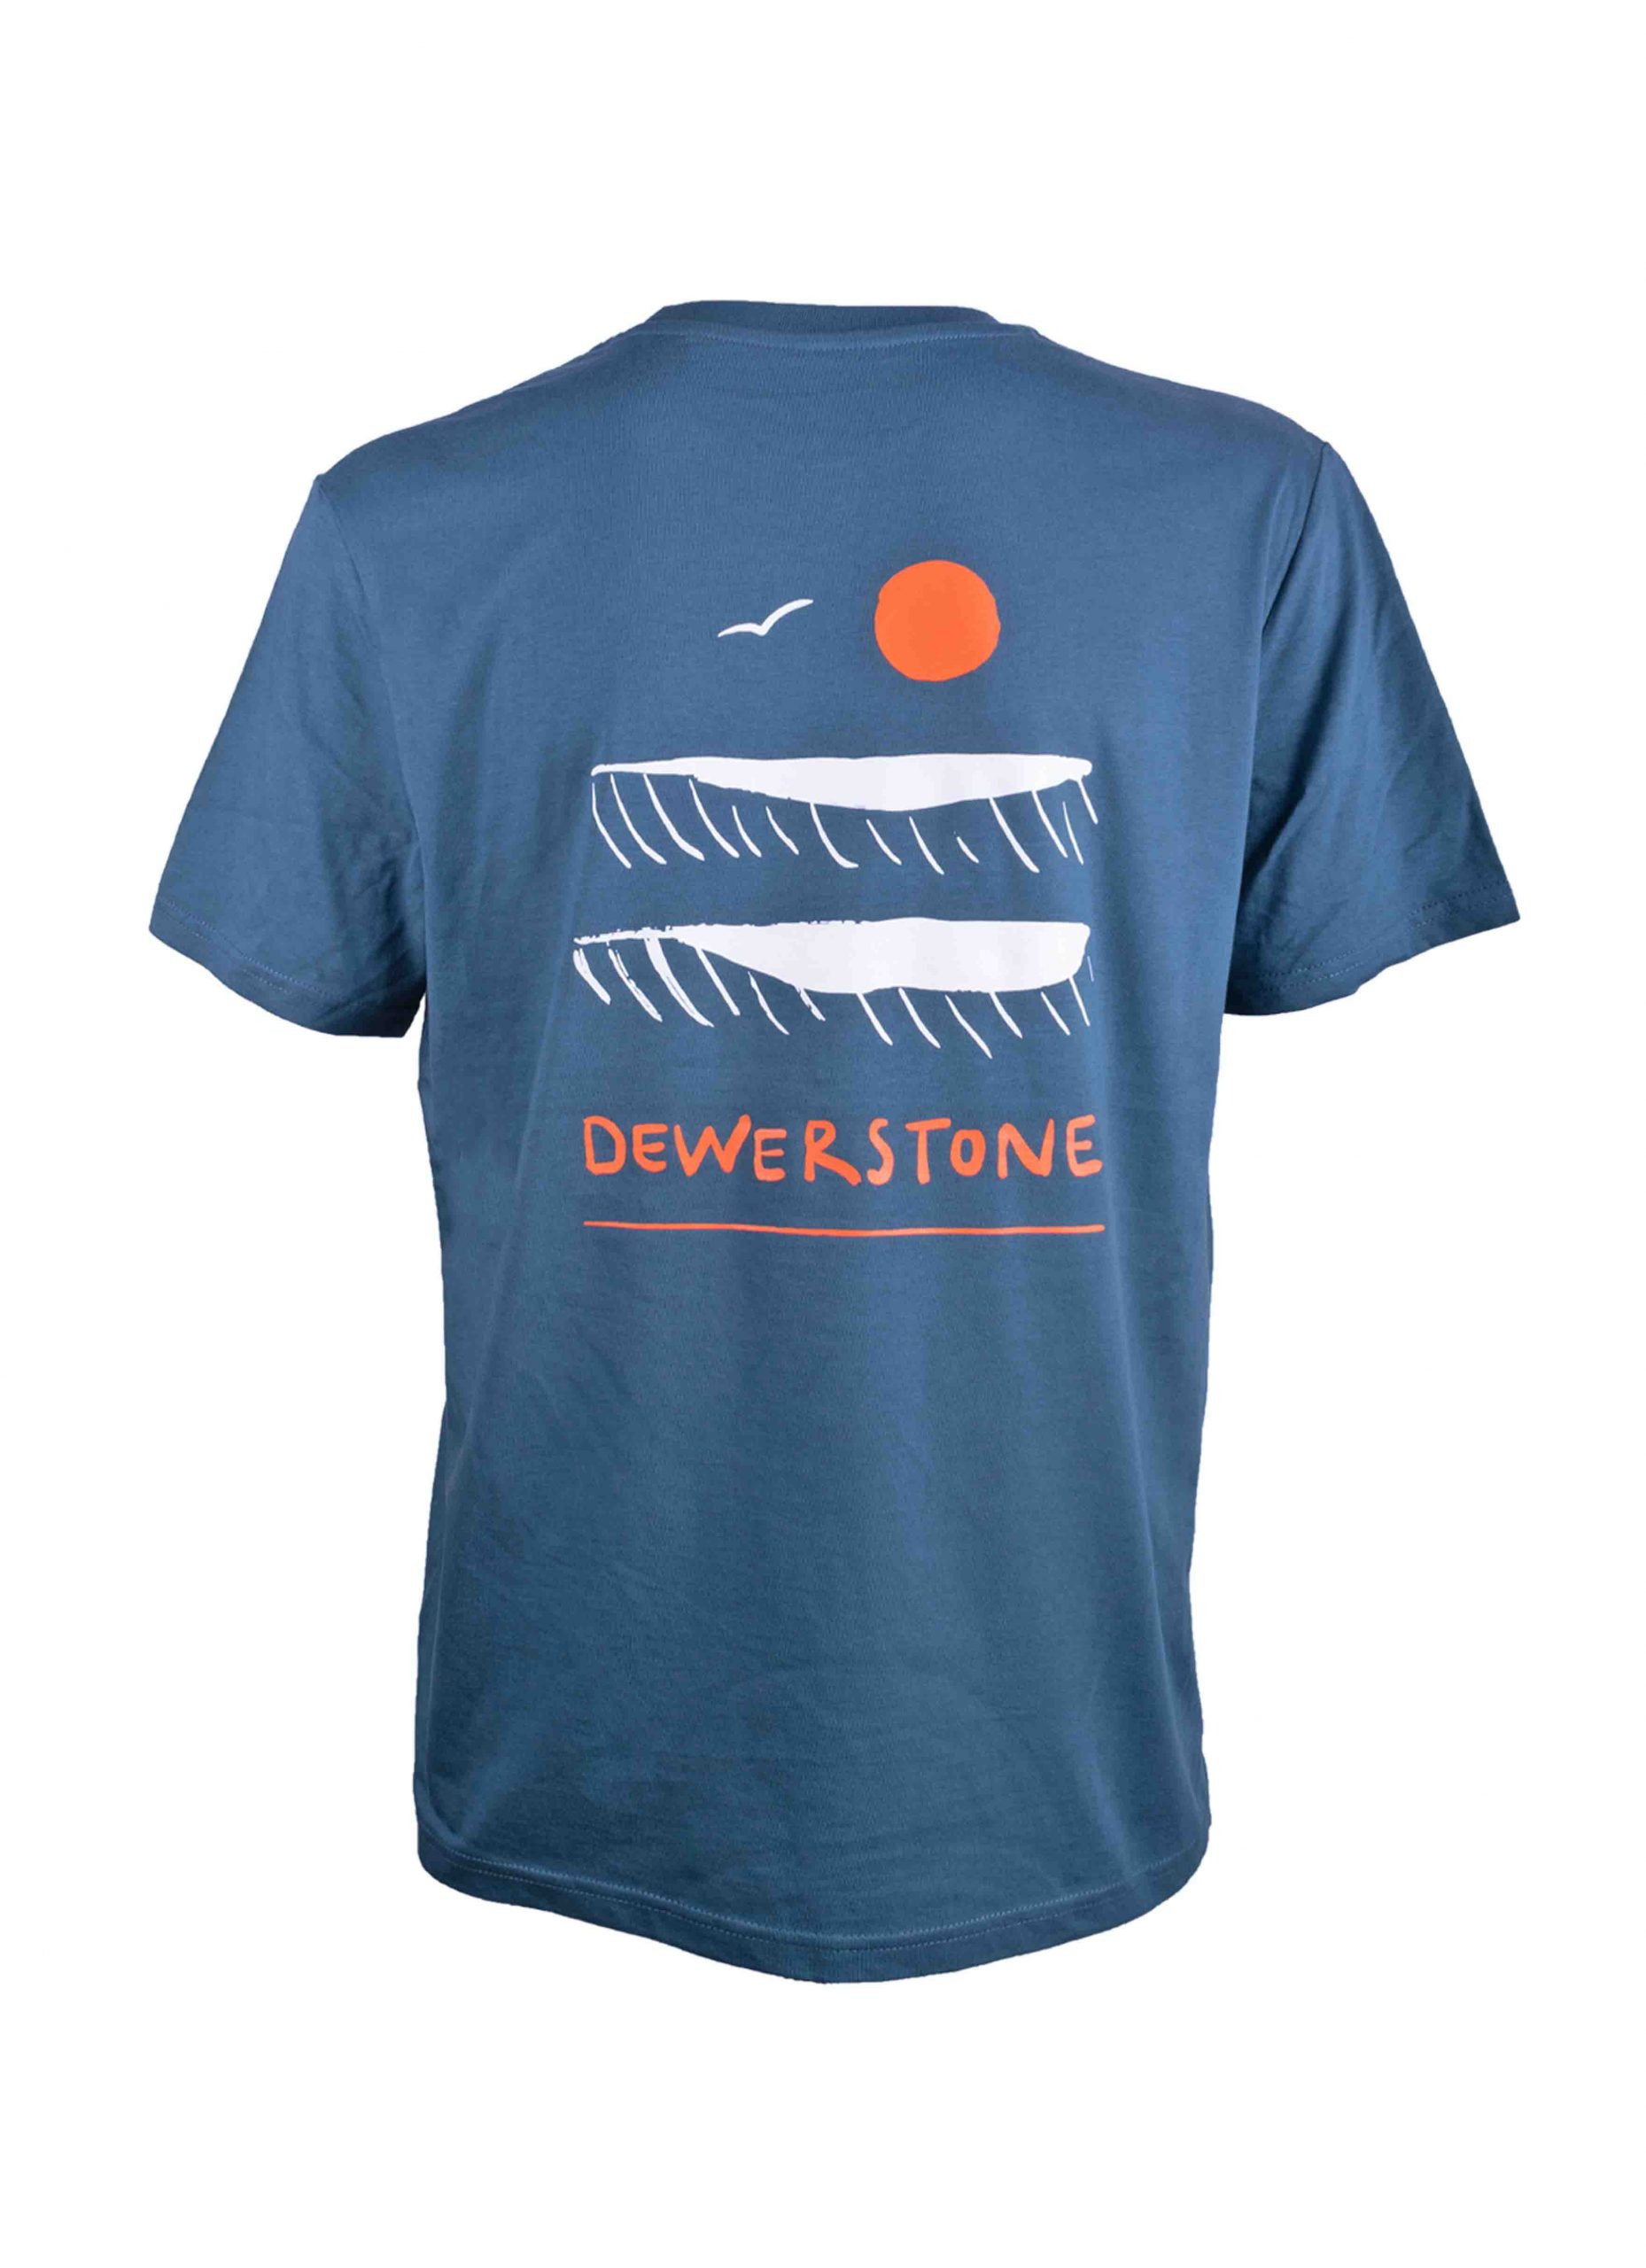 Dewerstone S/S 2022 Great Outdoors